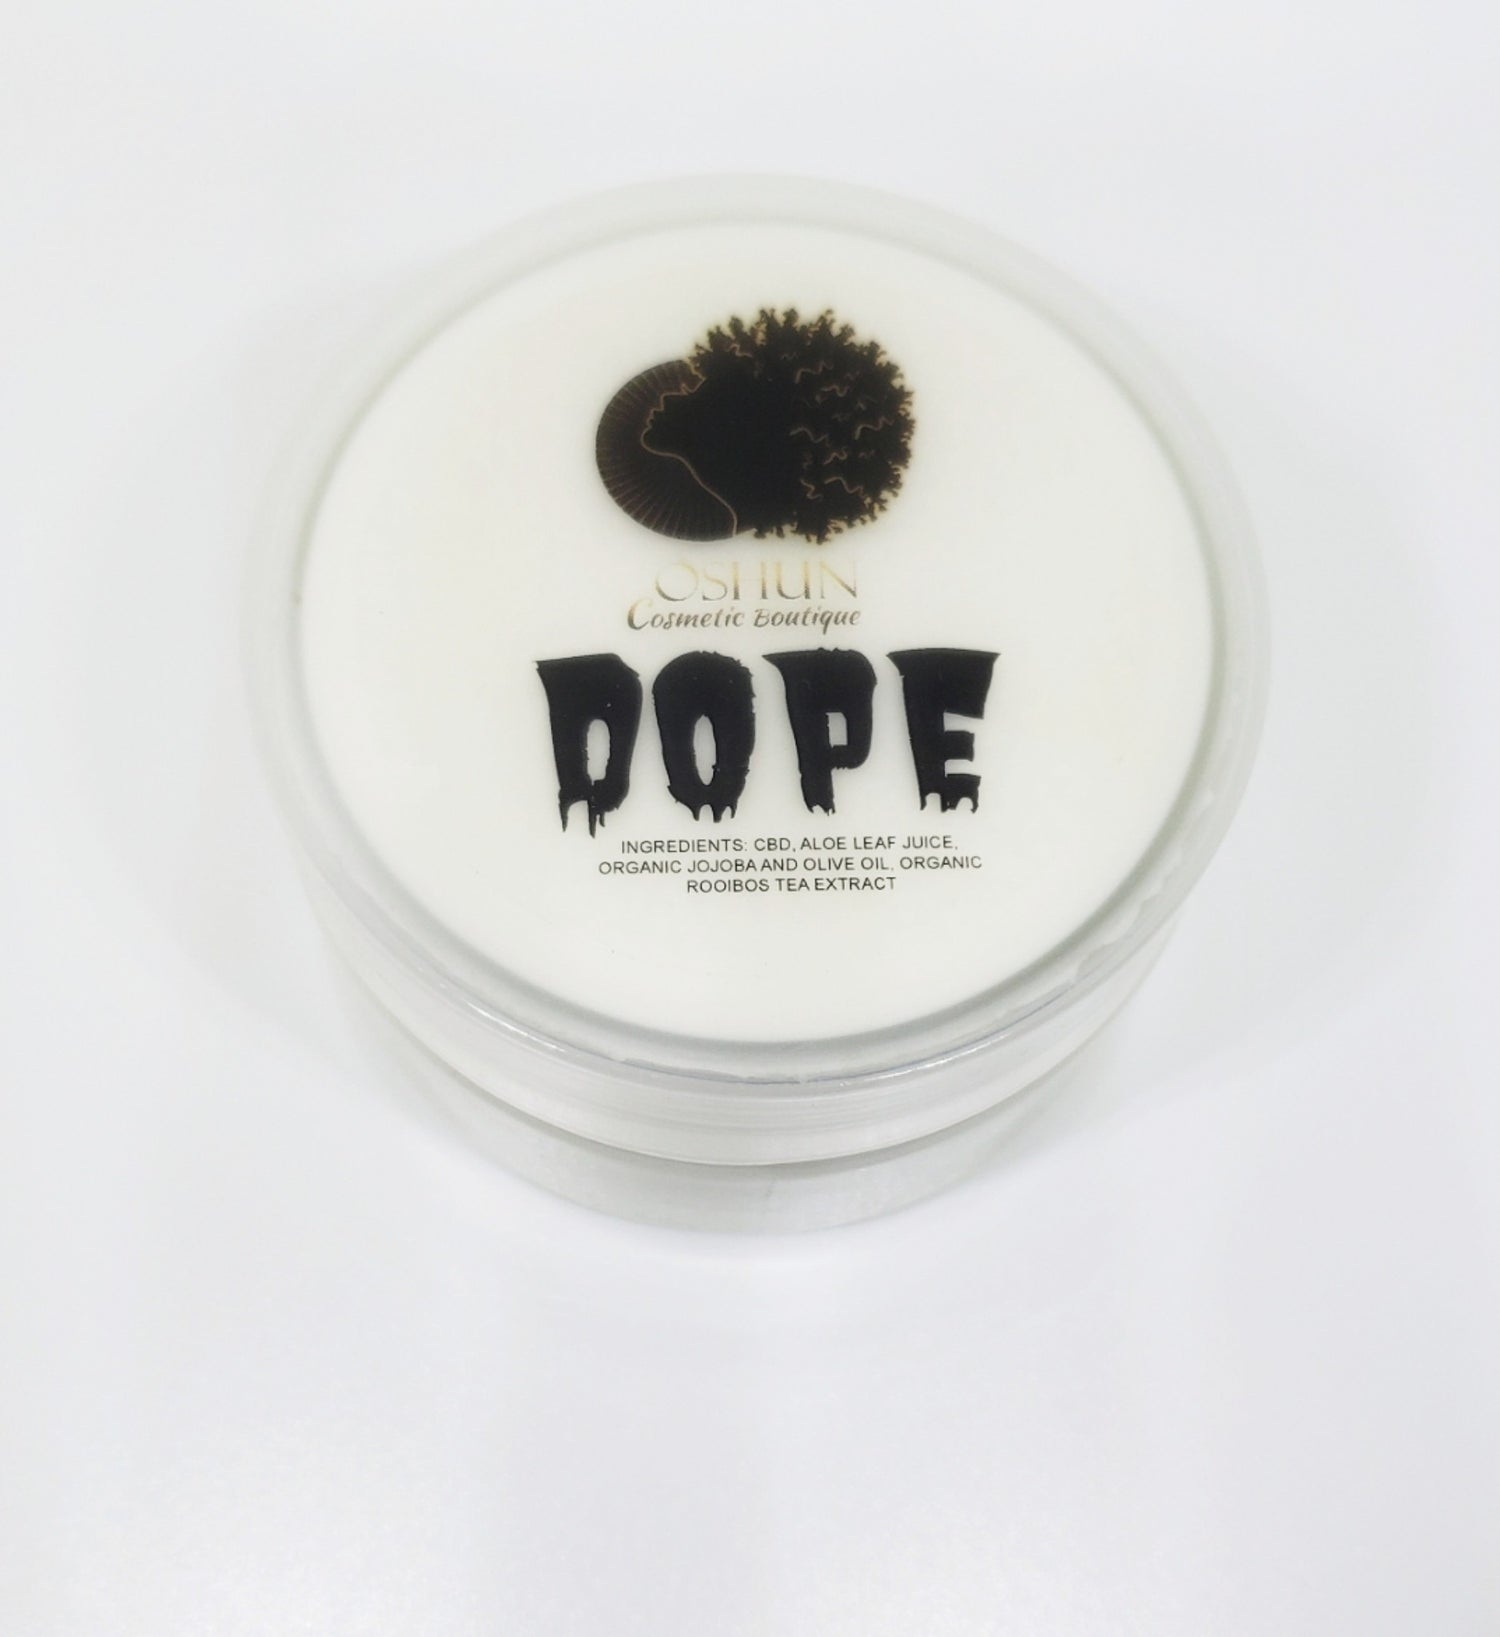 Image of DOPE face moisturizer